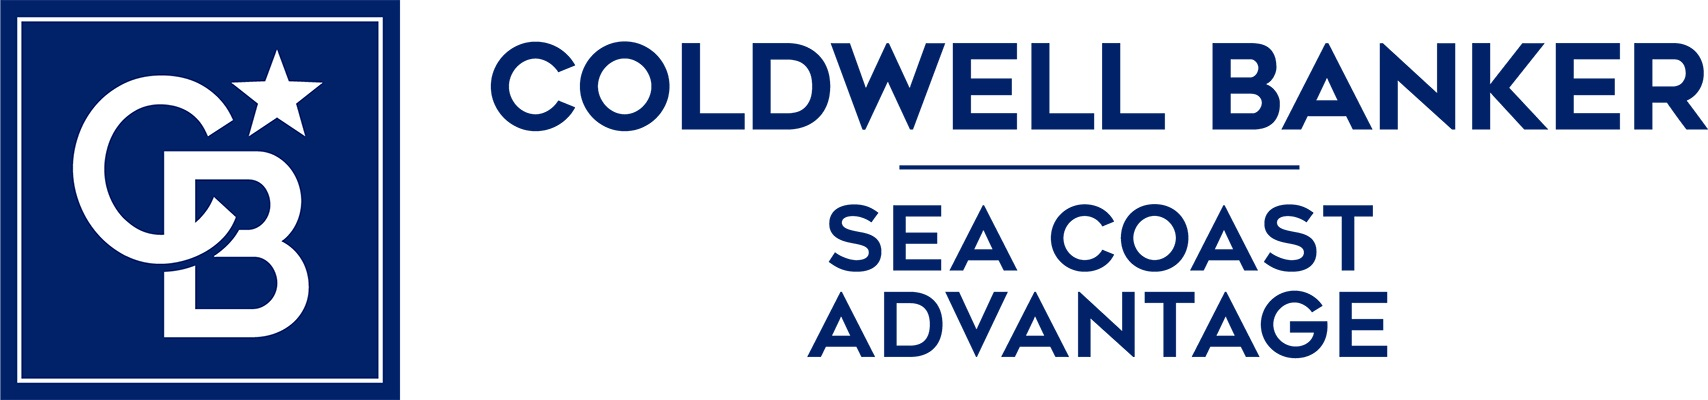 Dena Baysden - Coldwell Banker Sea Coast Advantage Realty